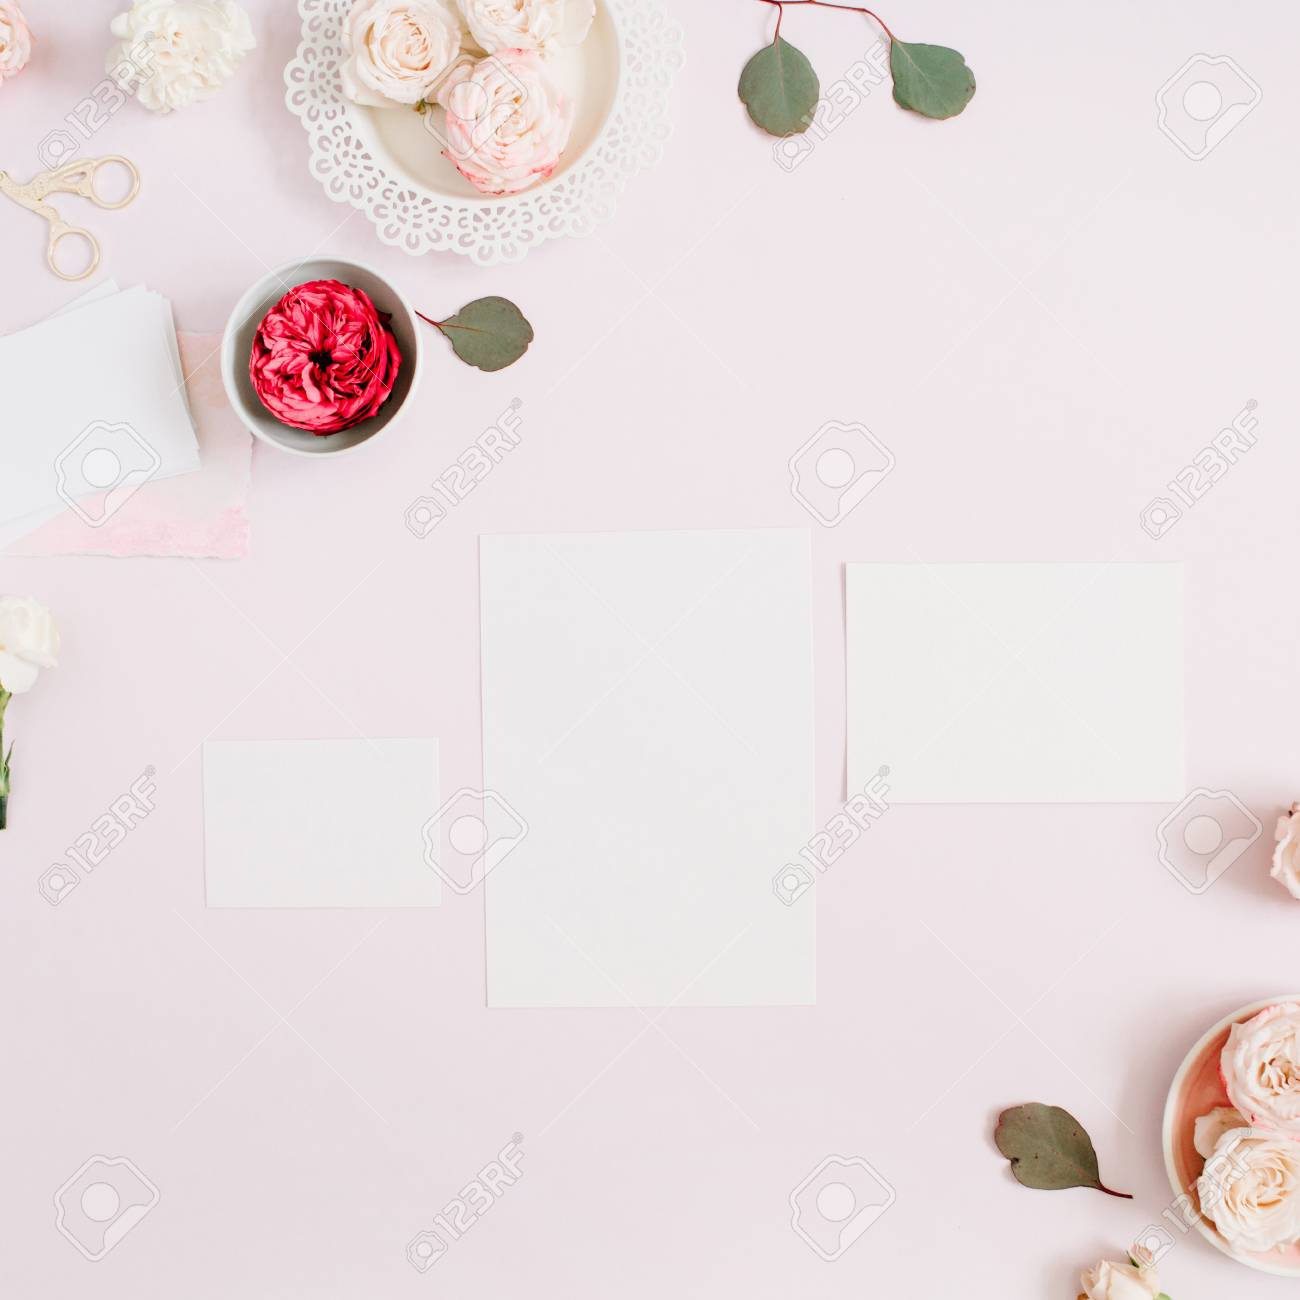 wedding invitation cards template pink and red rose flower buds